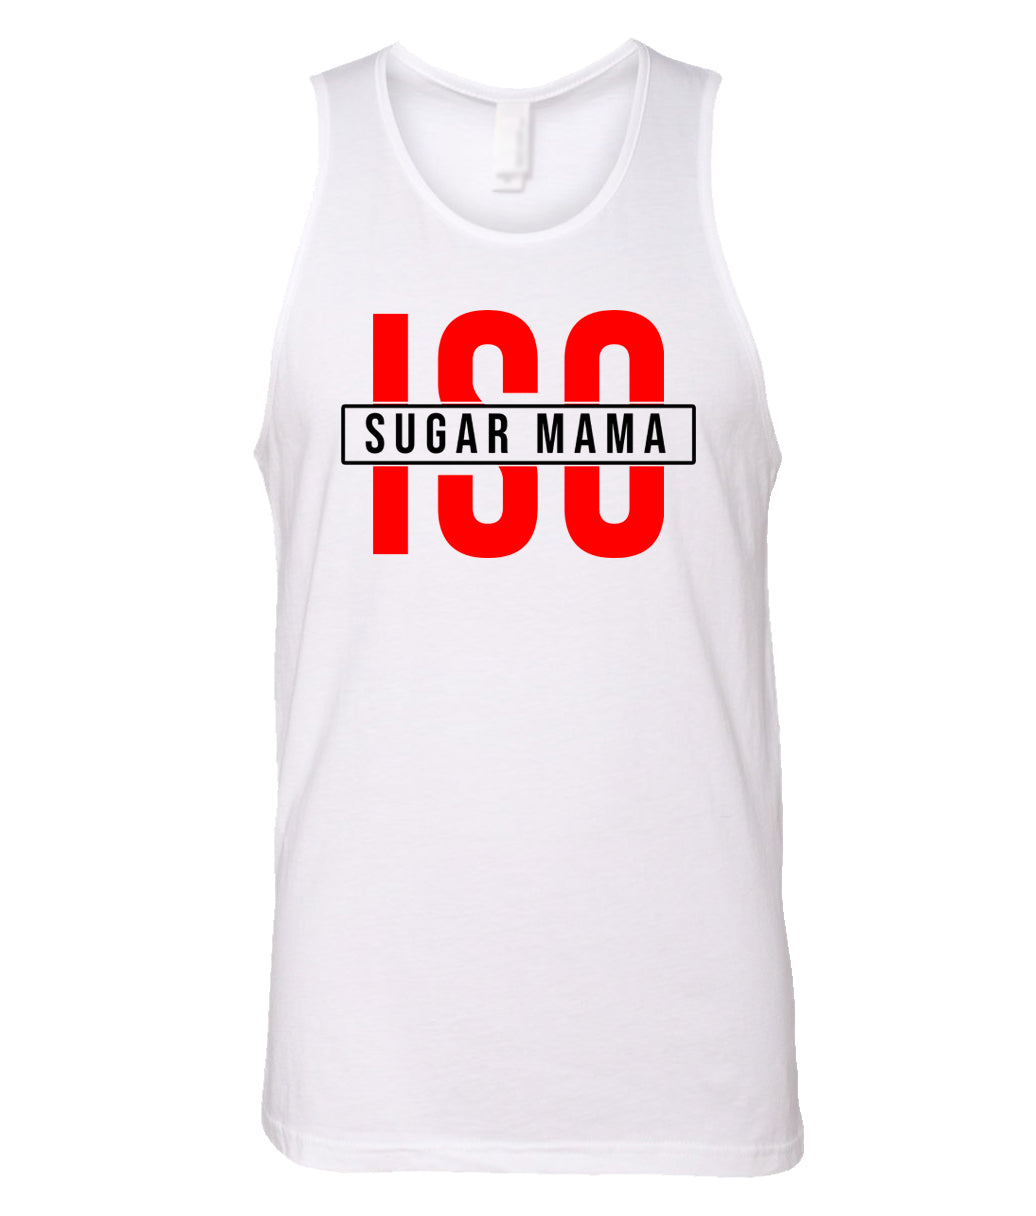 white ISO tank top